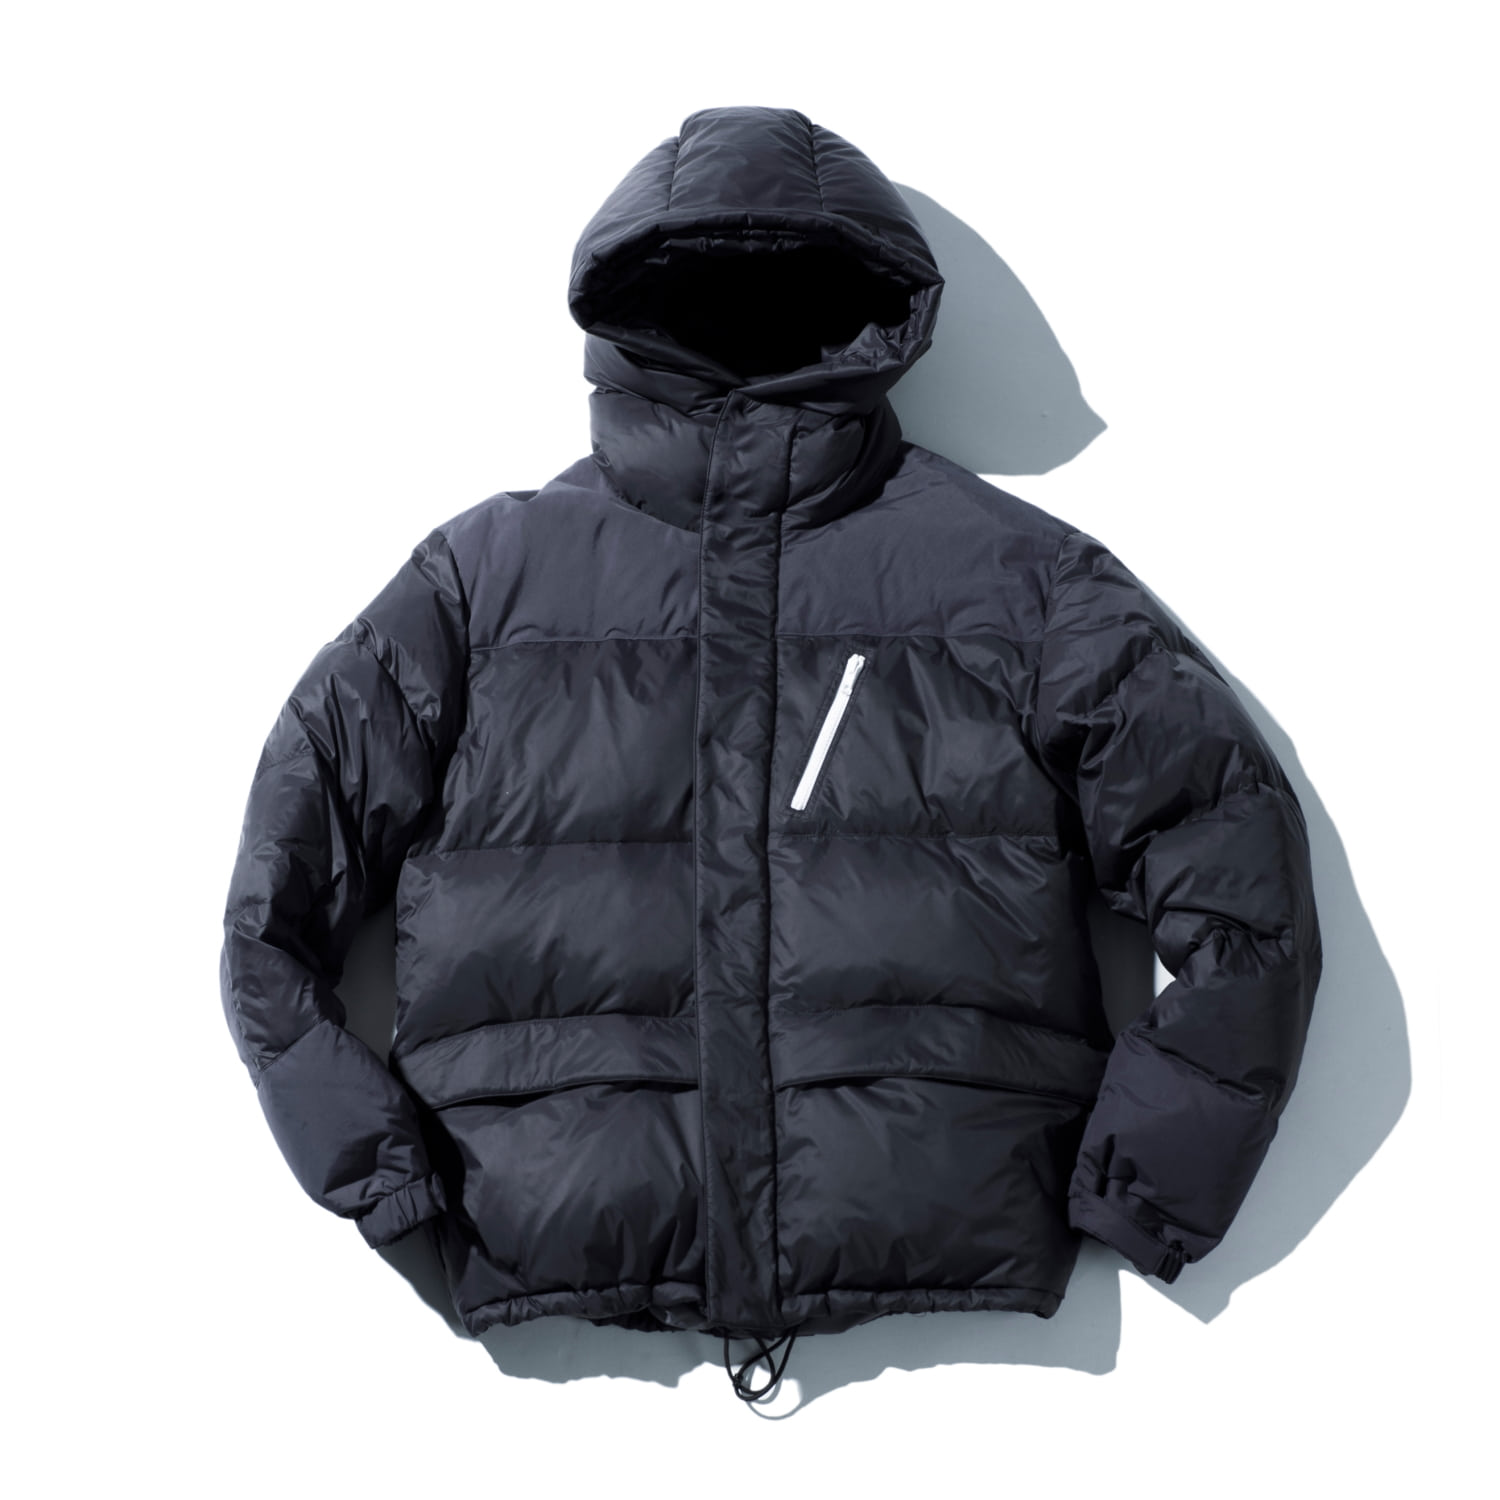 Comfy Down Jacket  40% SALE